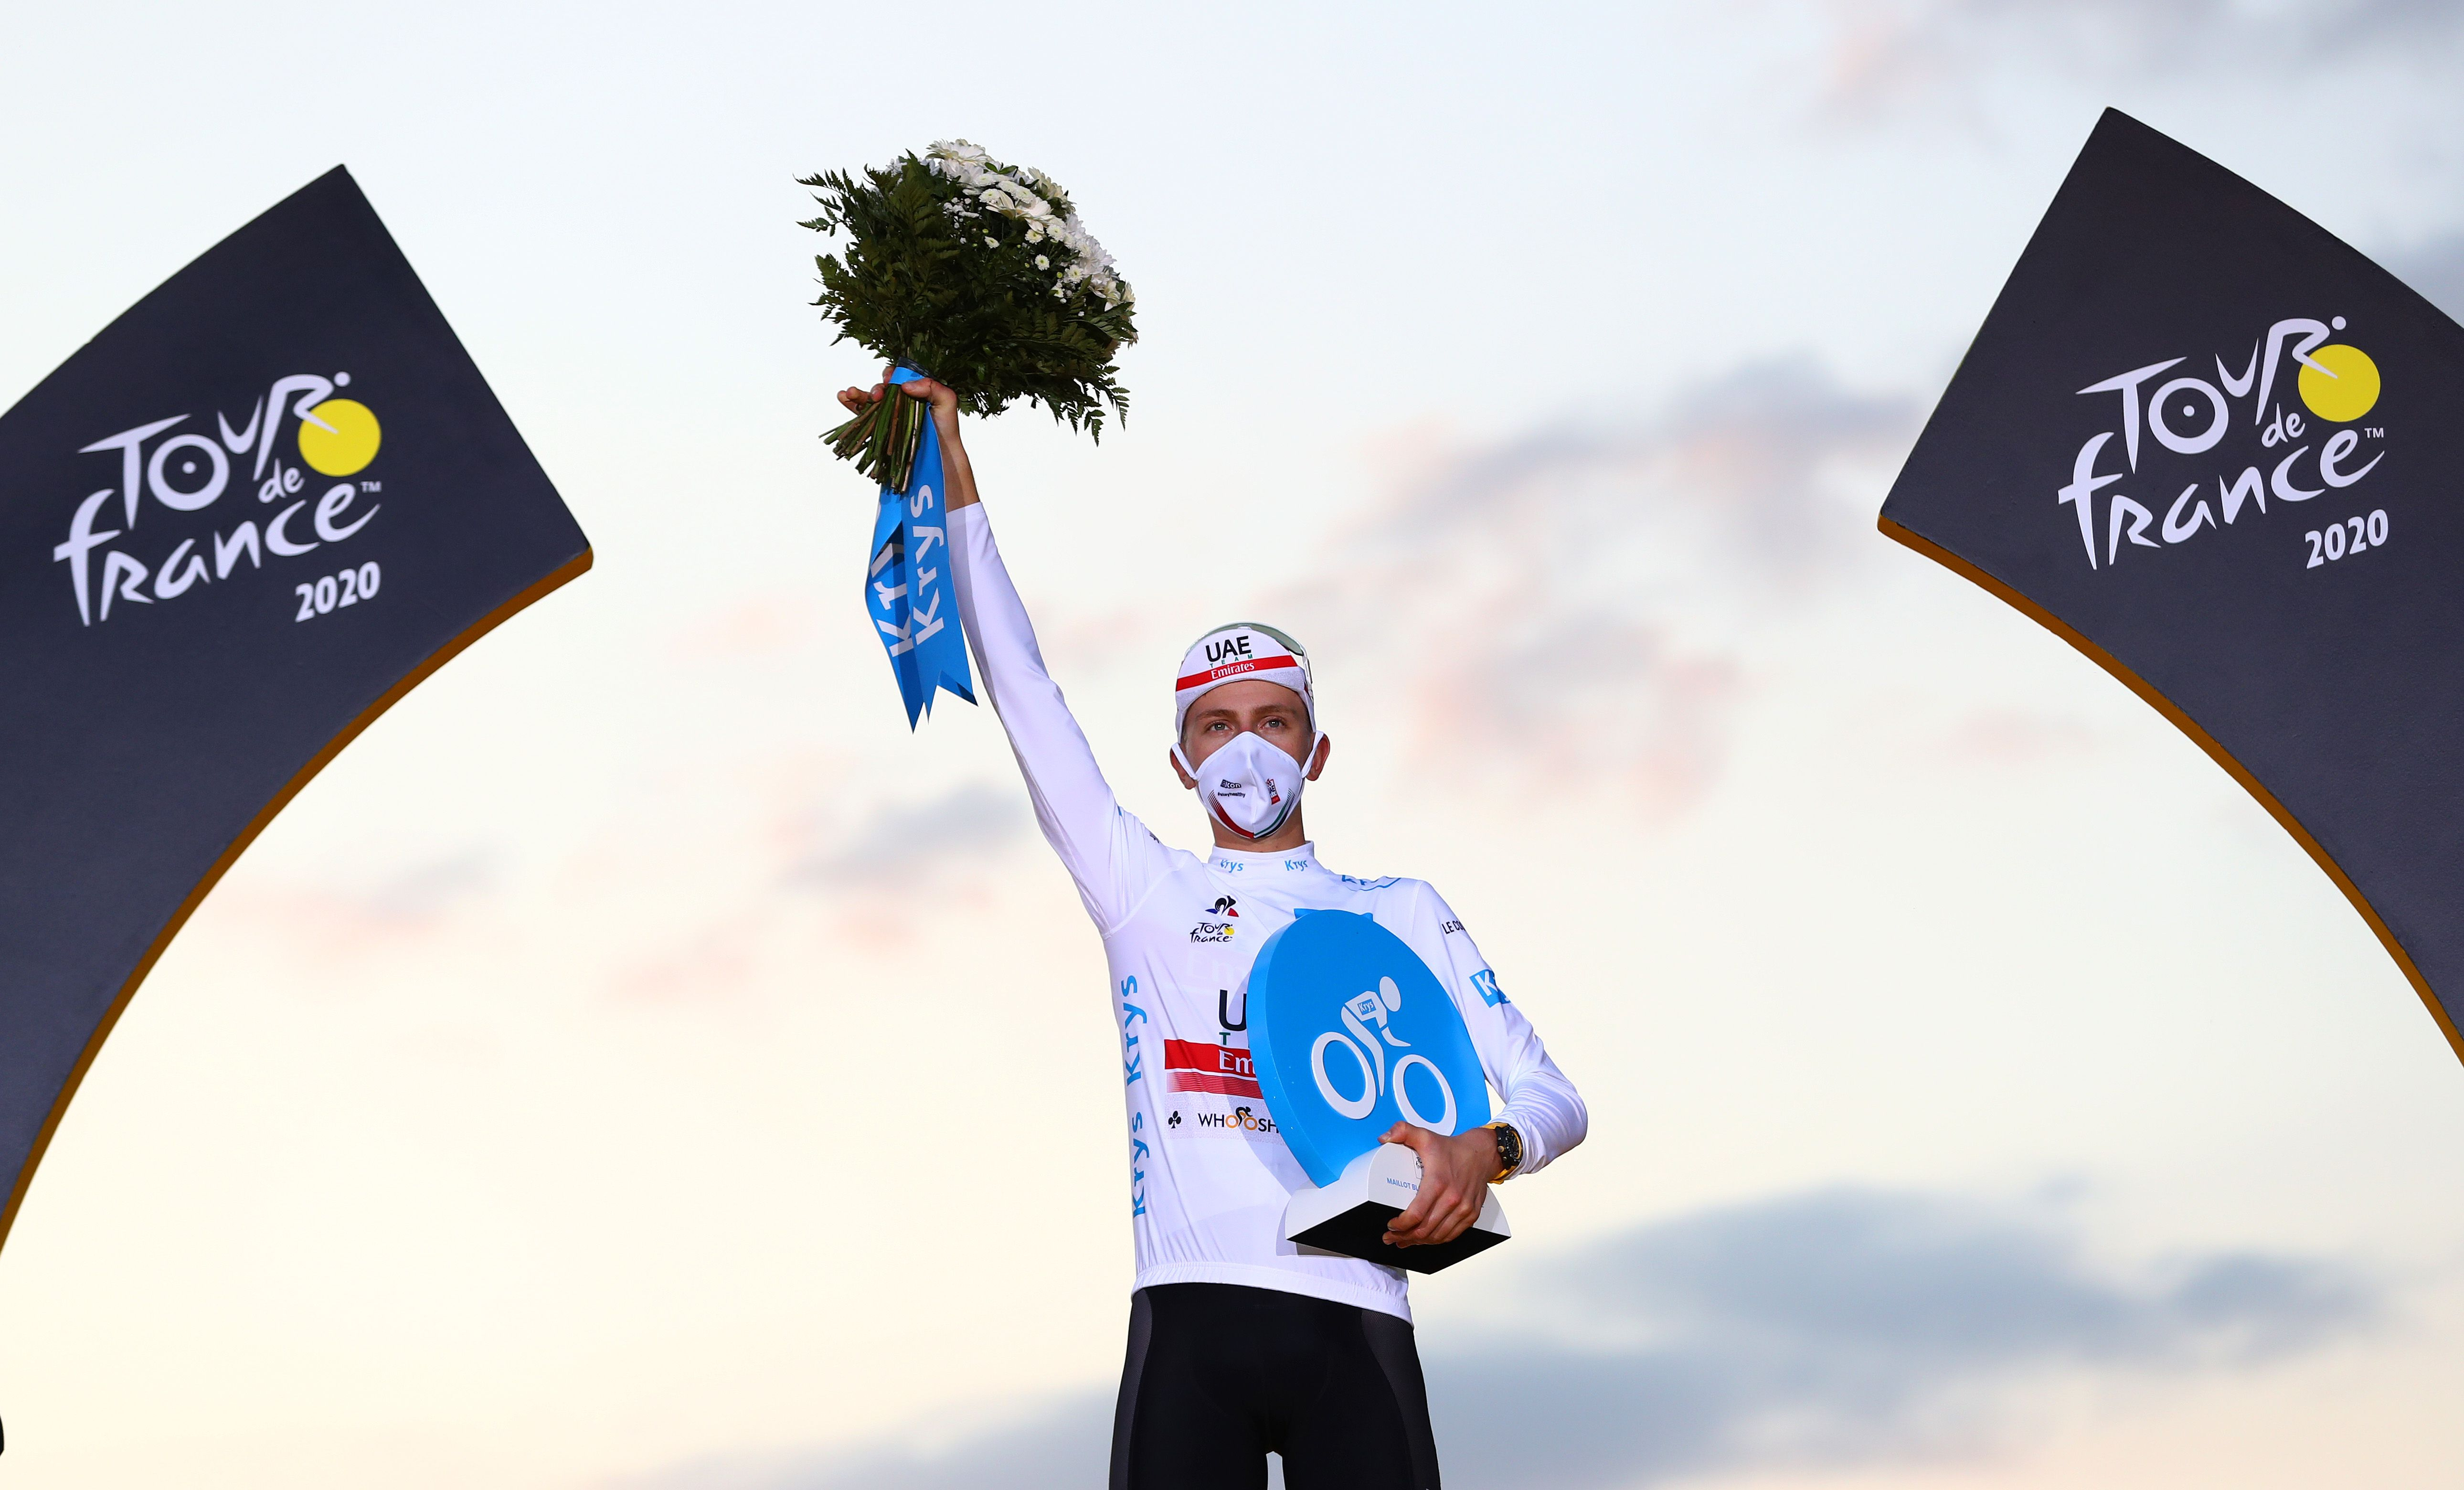 Tadej Pogacar also won the white jersey in 2020 for best rider younger than 25 years old.